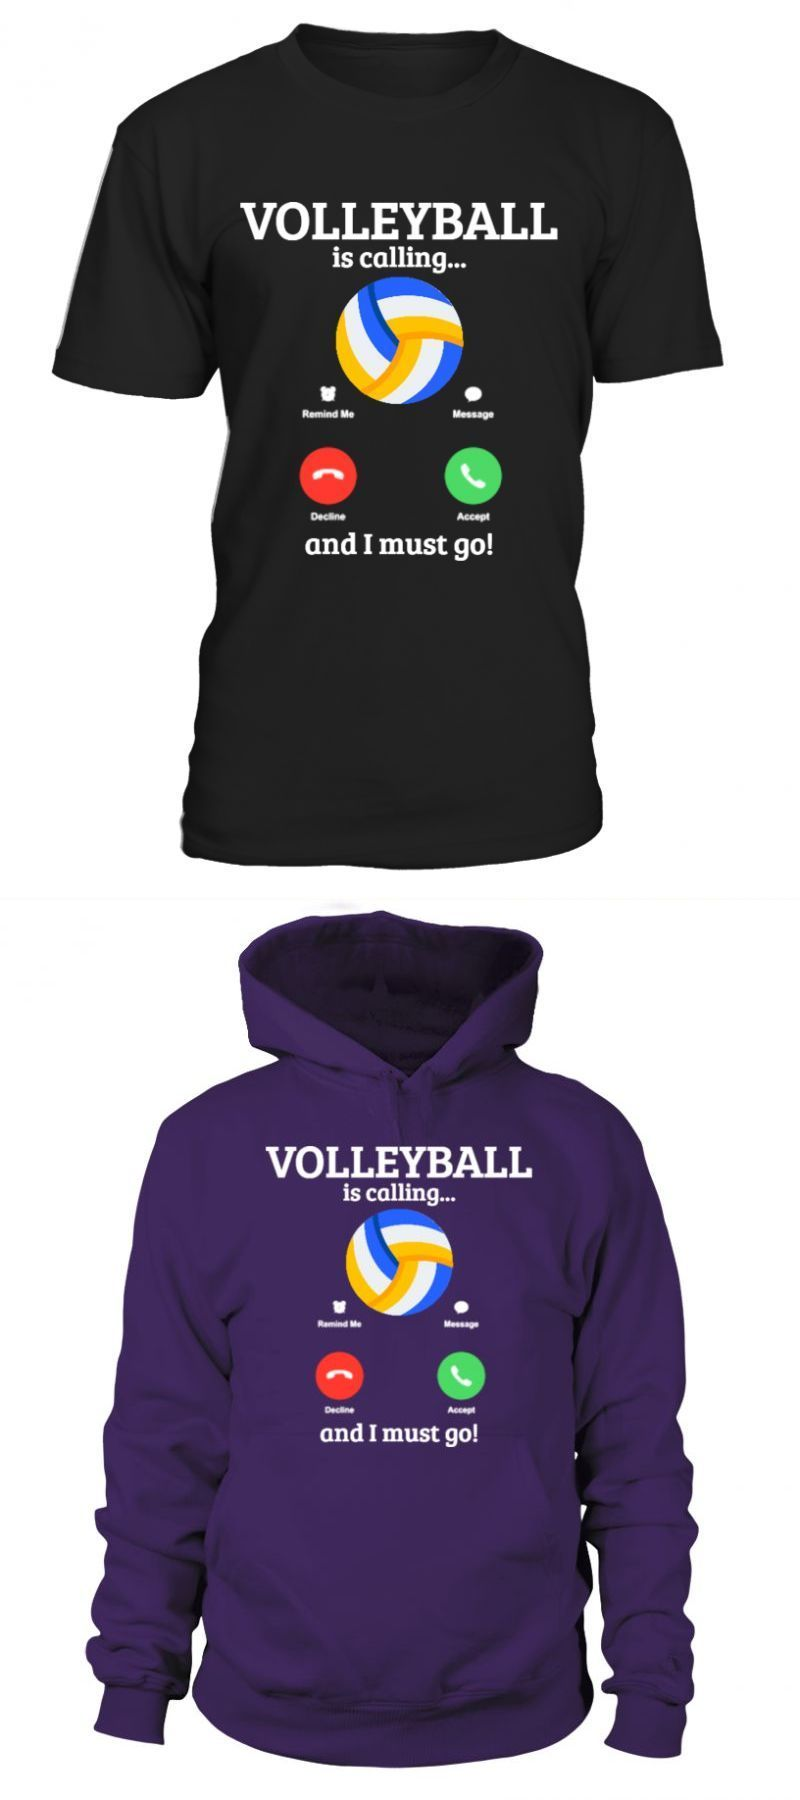 T Shirt Design Ideas Volleyball Volleyball Is Calling Volleyball Mom T Shirt Custom Shirt Design Ideas Volleyball Custom Shirts Shirt Designs Mom Tshirts